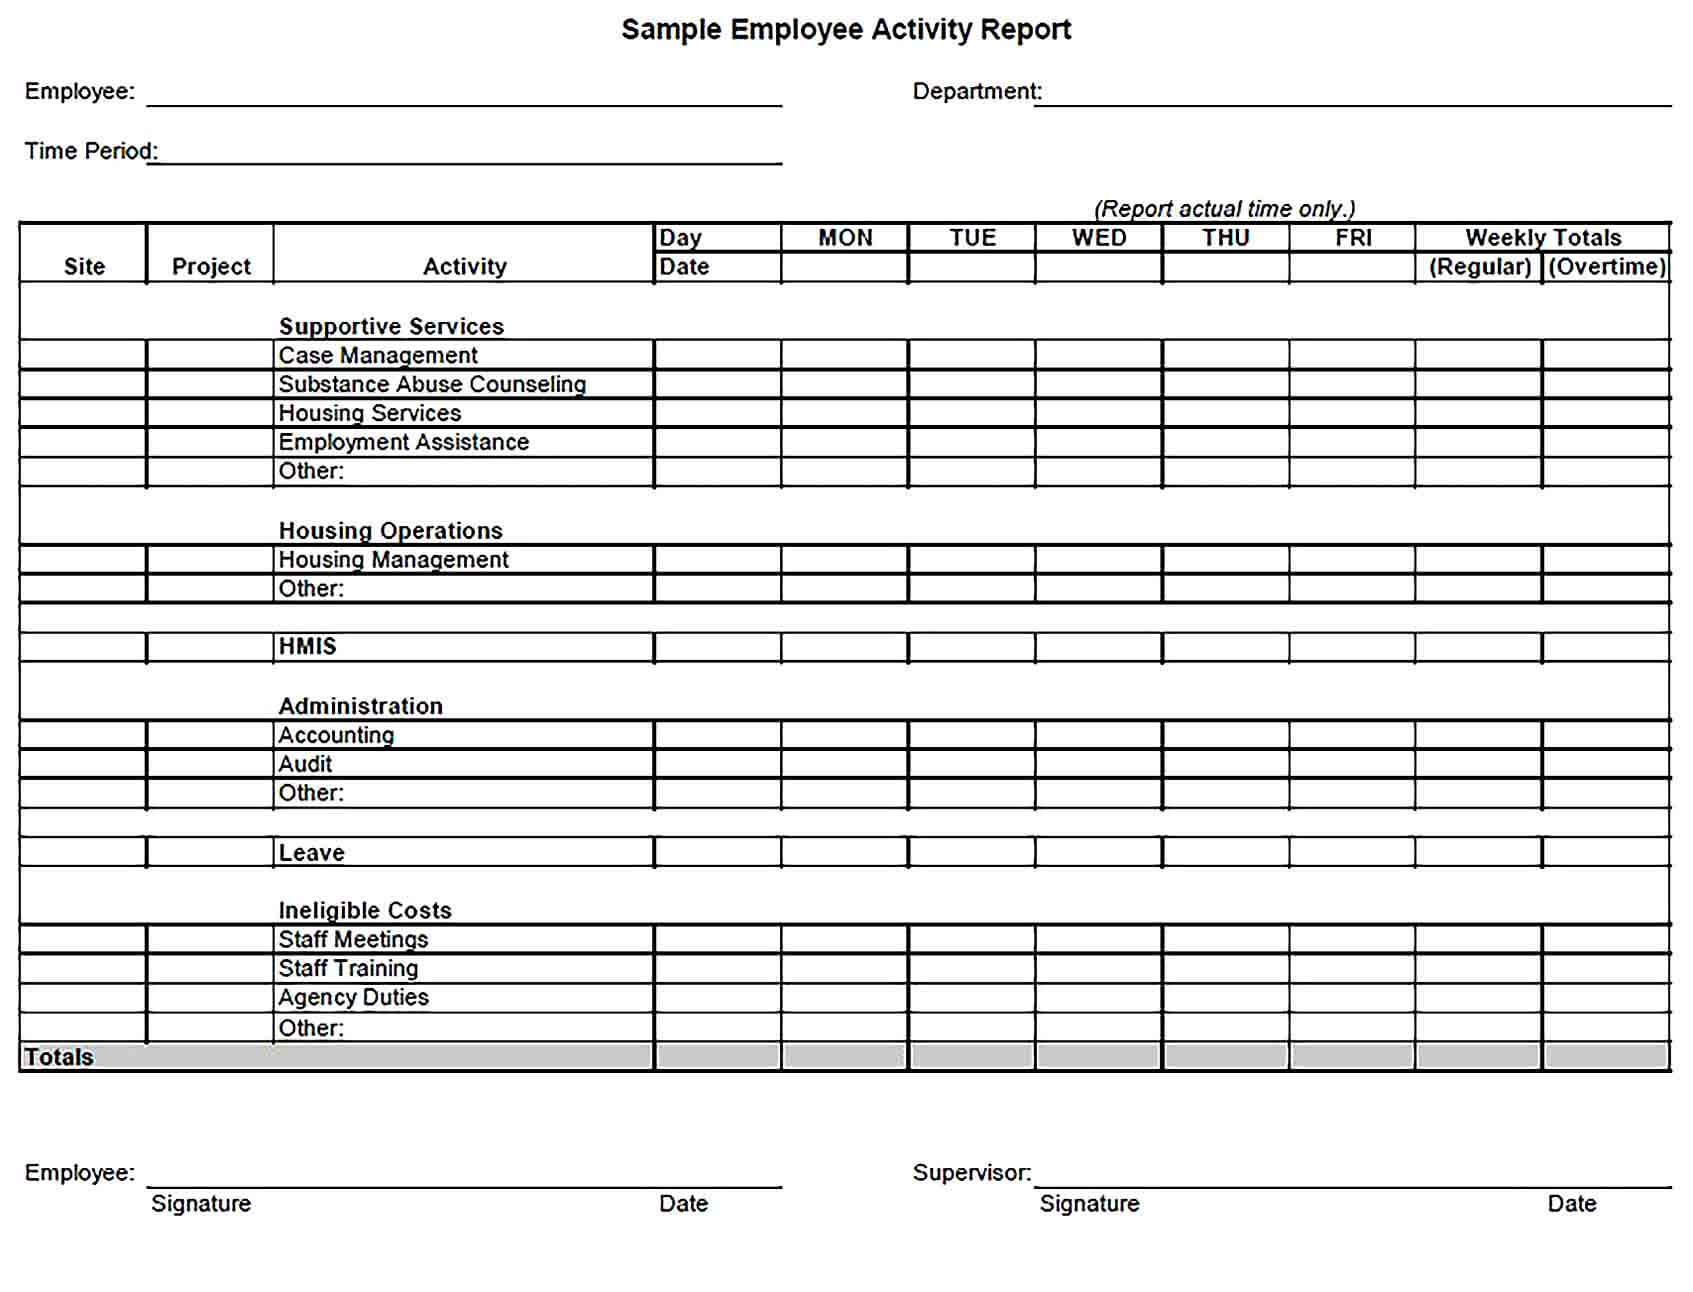 Sample Employee Activity